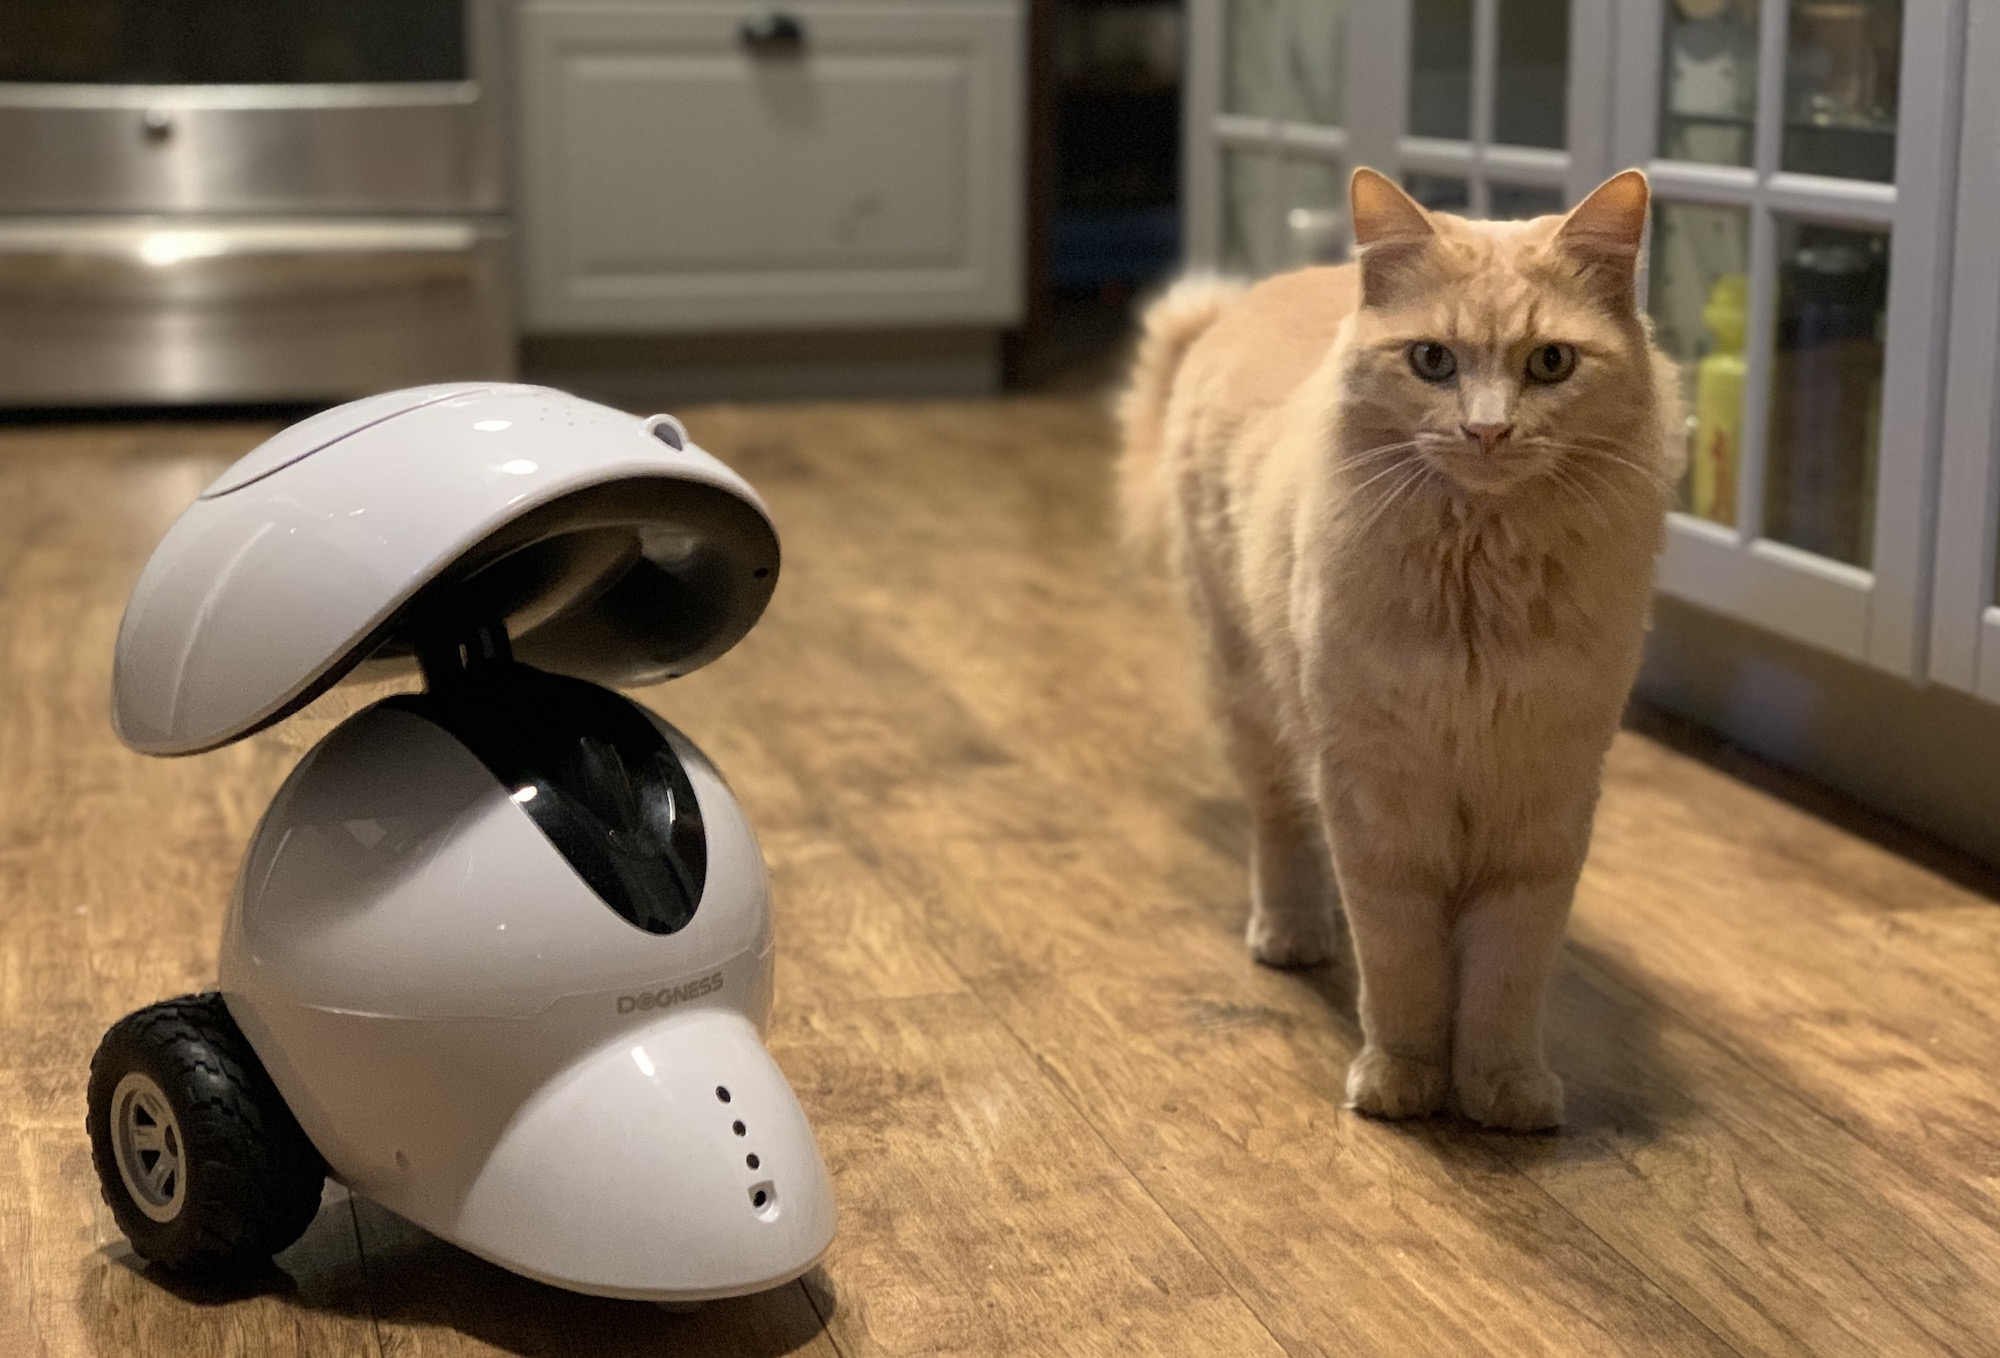 robot intelligent distributeur de récompenses iPet de Dogness